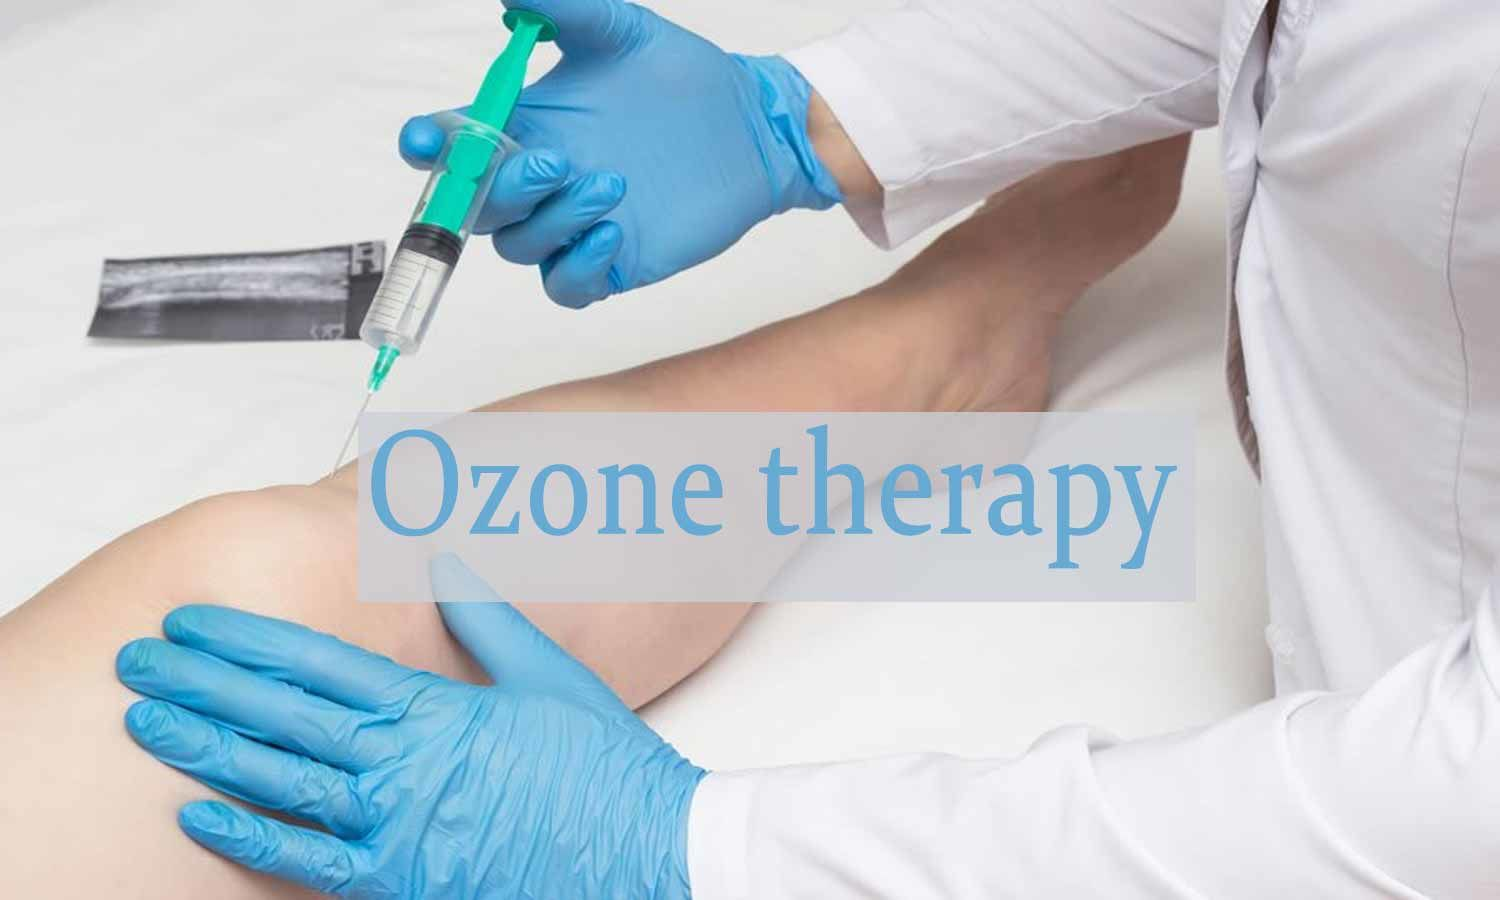 Ozone Therapy: Should It Be Approved for Medicinal Use?